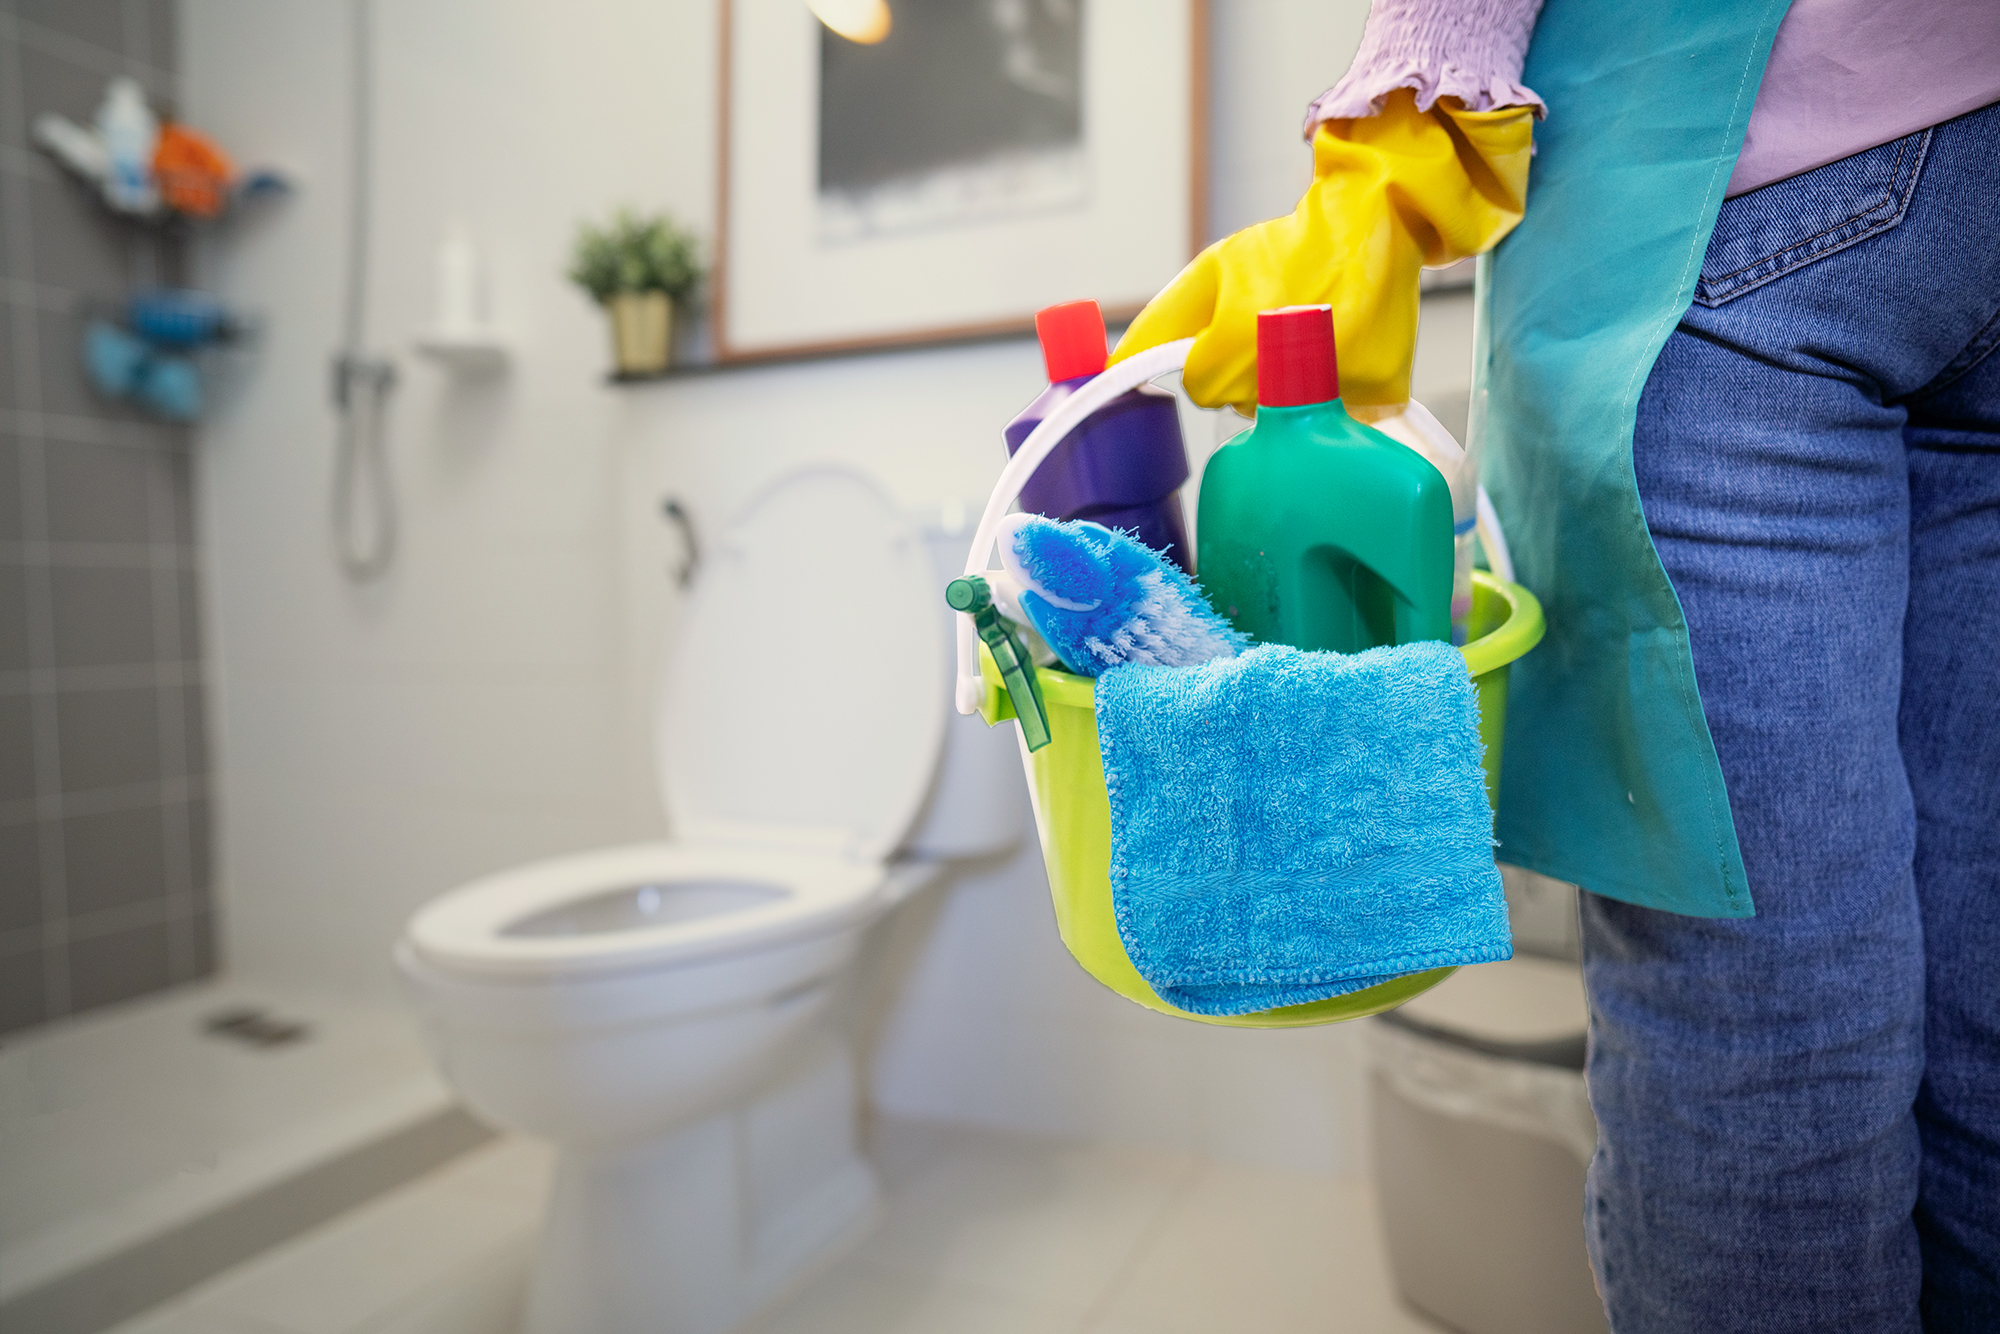 The cleaning woman is standing in the bathroom holding a blue bucket full of chemicals and cleaning utensils